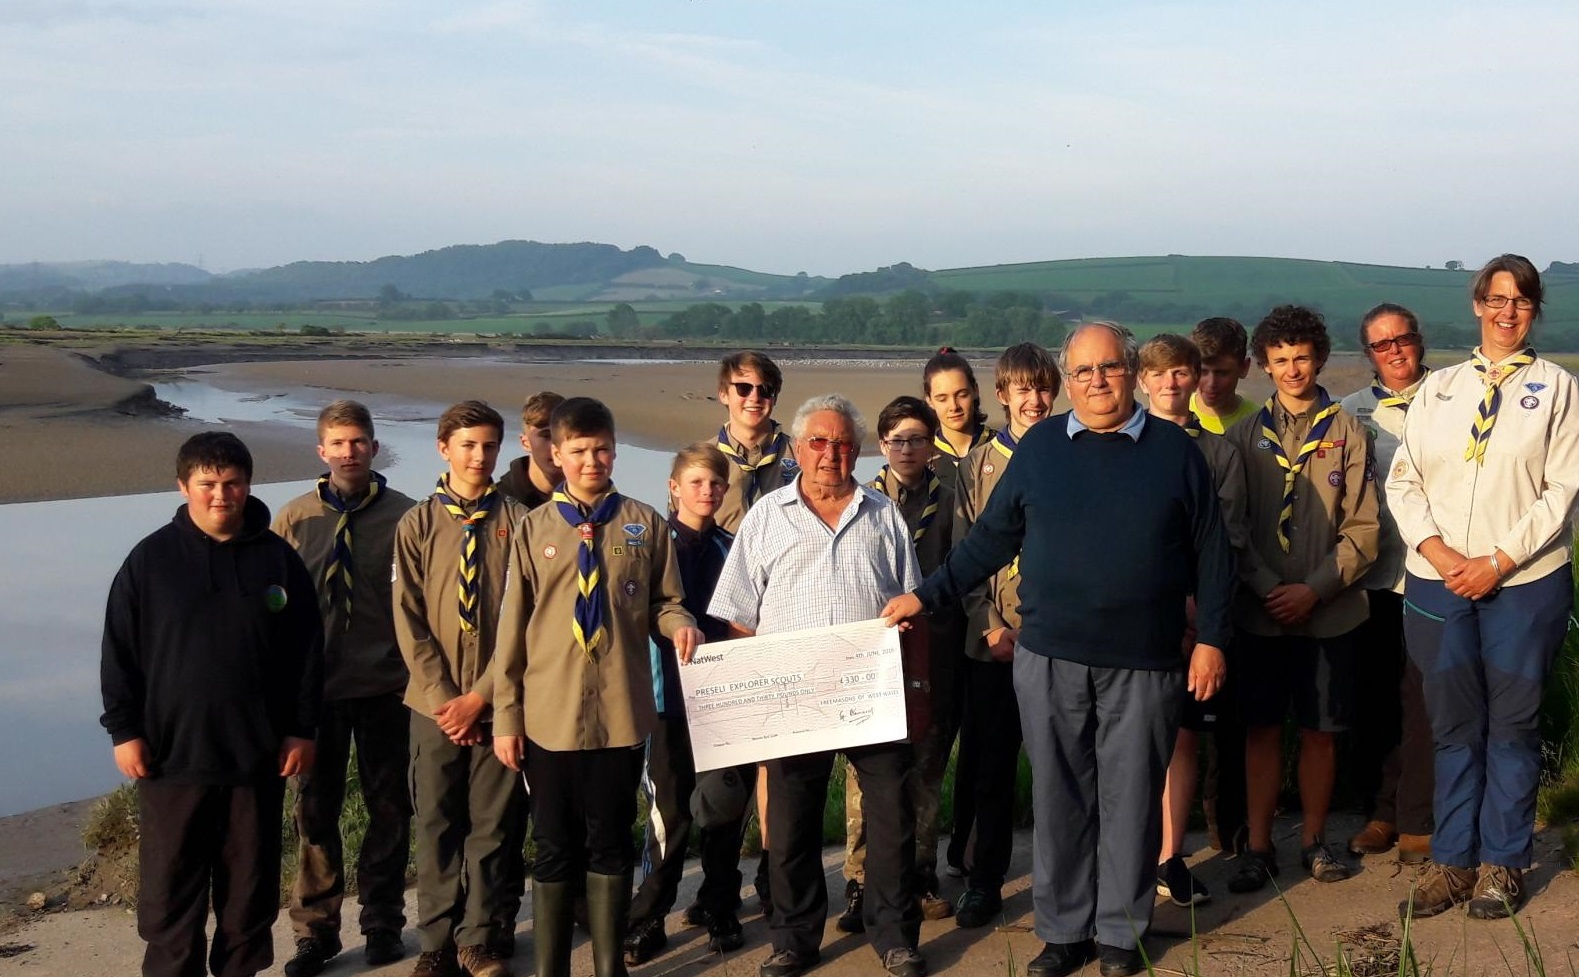 Preseli Pioneers Explorer Scout group members are pictured receiving the cheque from George Bancroft and Freemason Patrick of the Freemasons of West Wales.